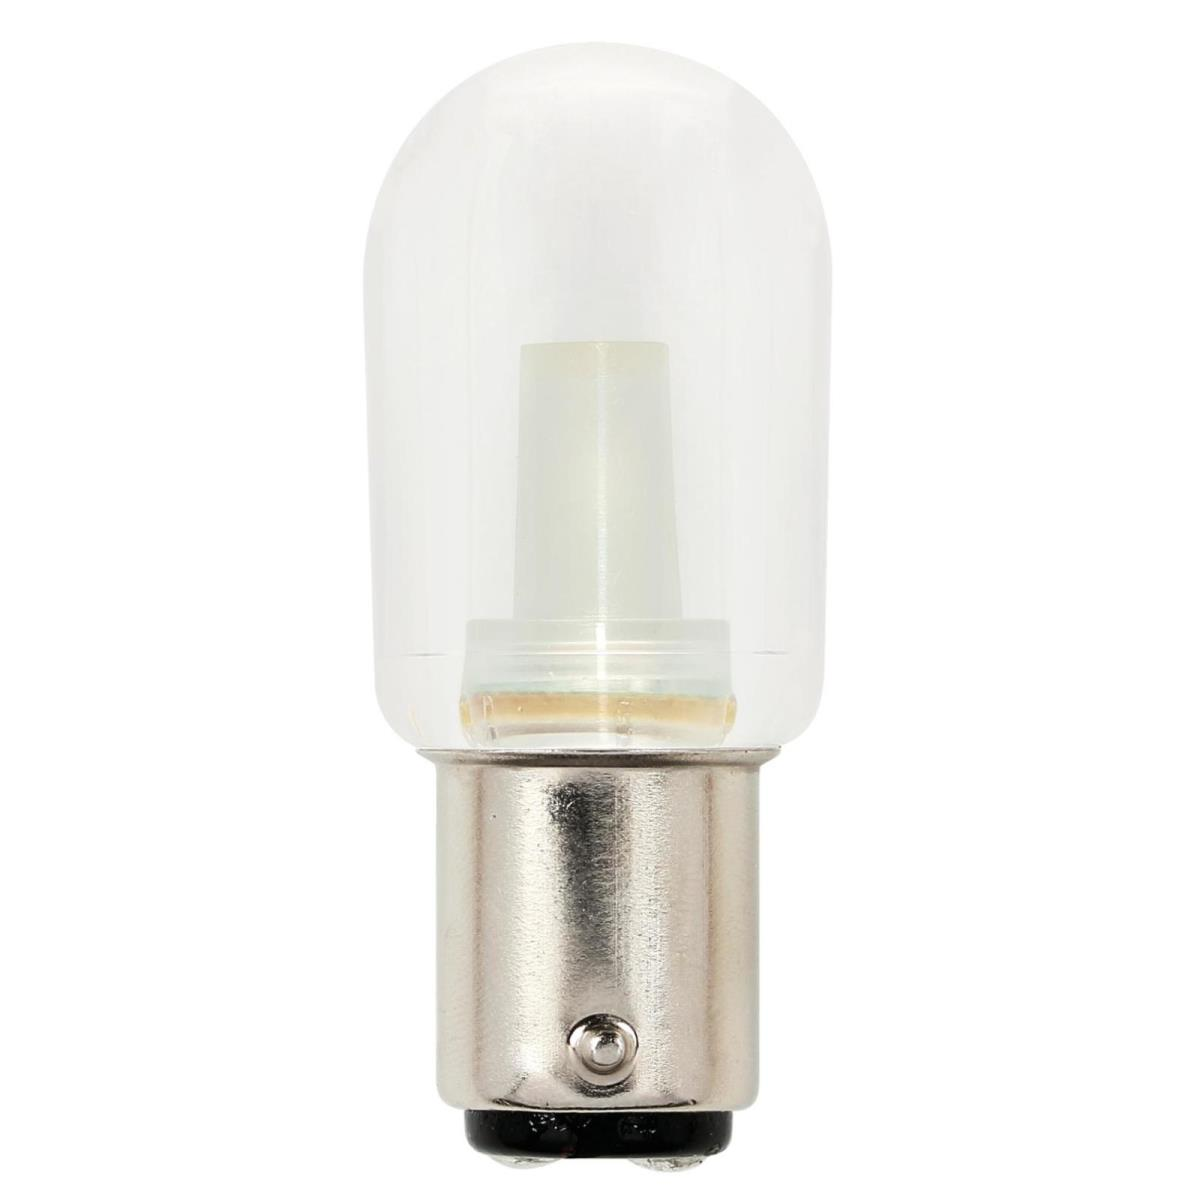 1.5W T7 LED Clear 2700K D.C. Bayonet Base, 120 Volt, Card